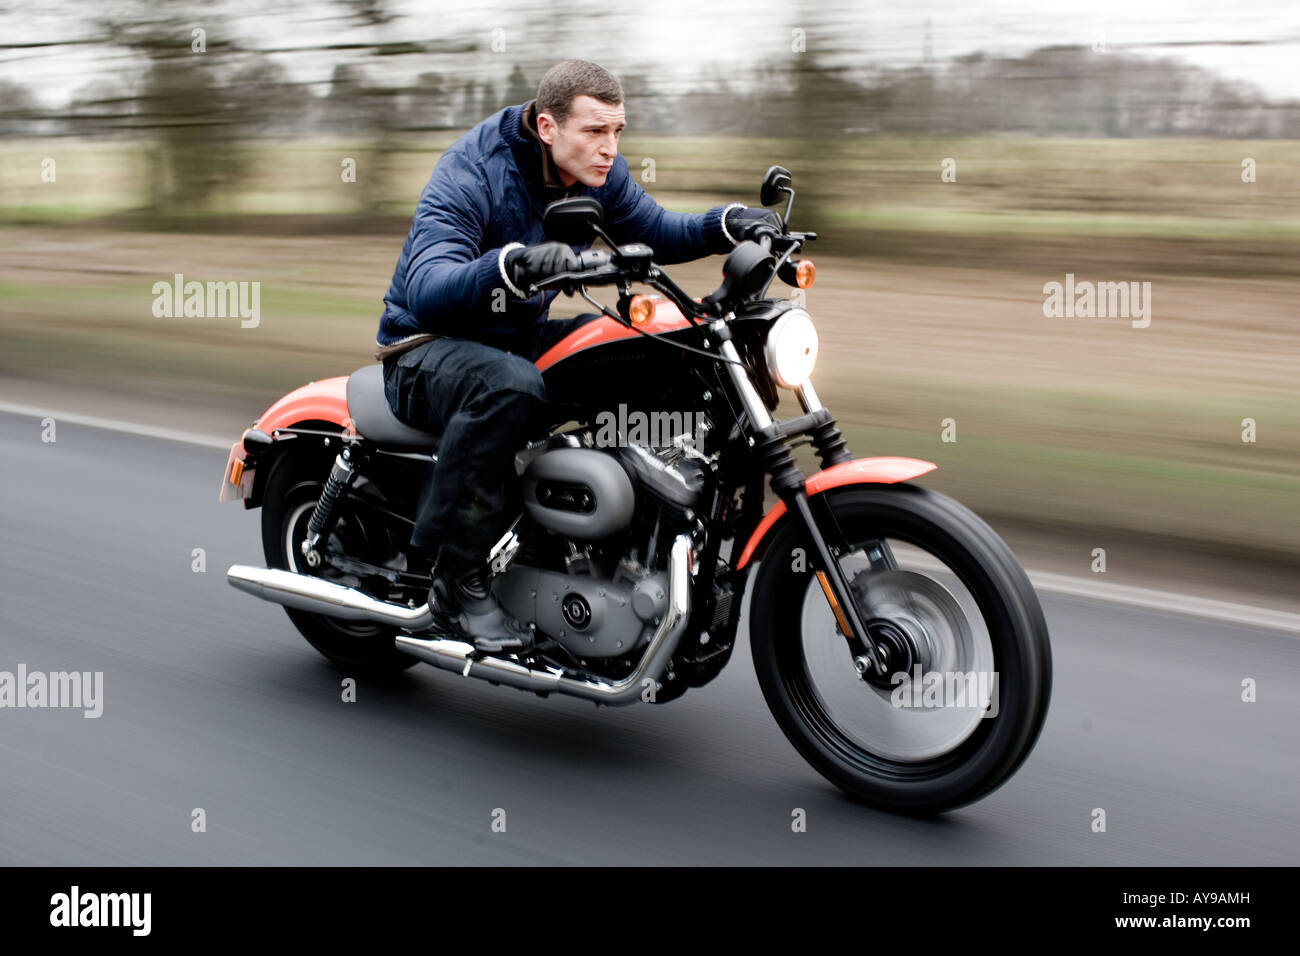 MAN ON HARLEY DAVIDSON Stock Photo: 17035216 - Alamy